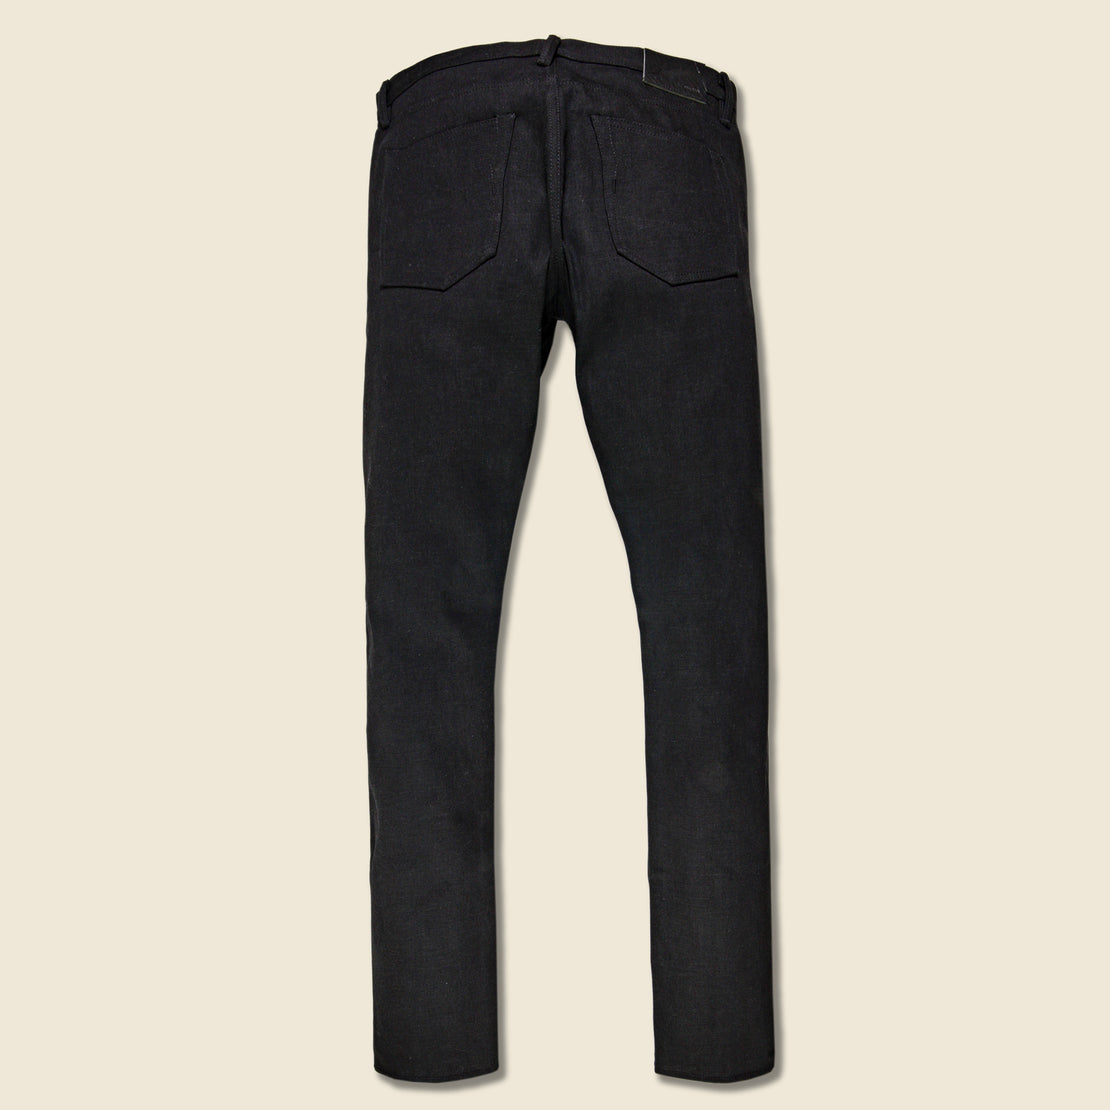 SK 15oz - Stealth Black - Rogue Territory - STAG Provisions - Pants - Denim